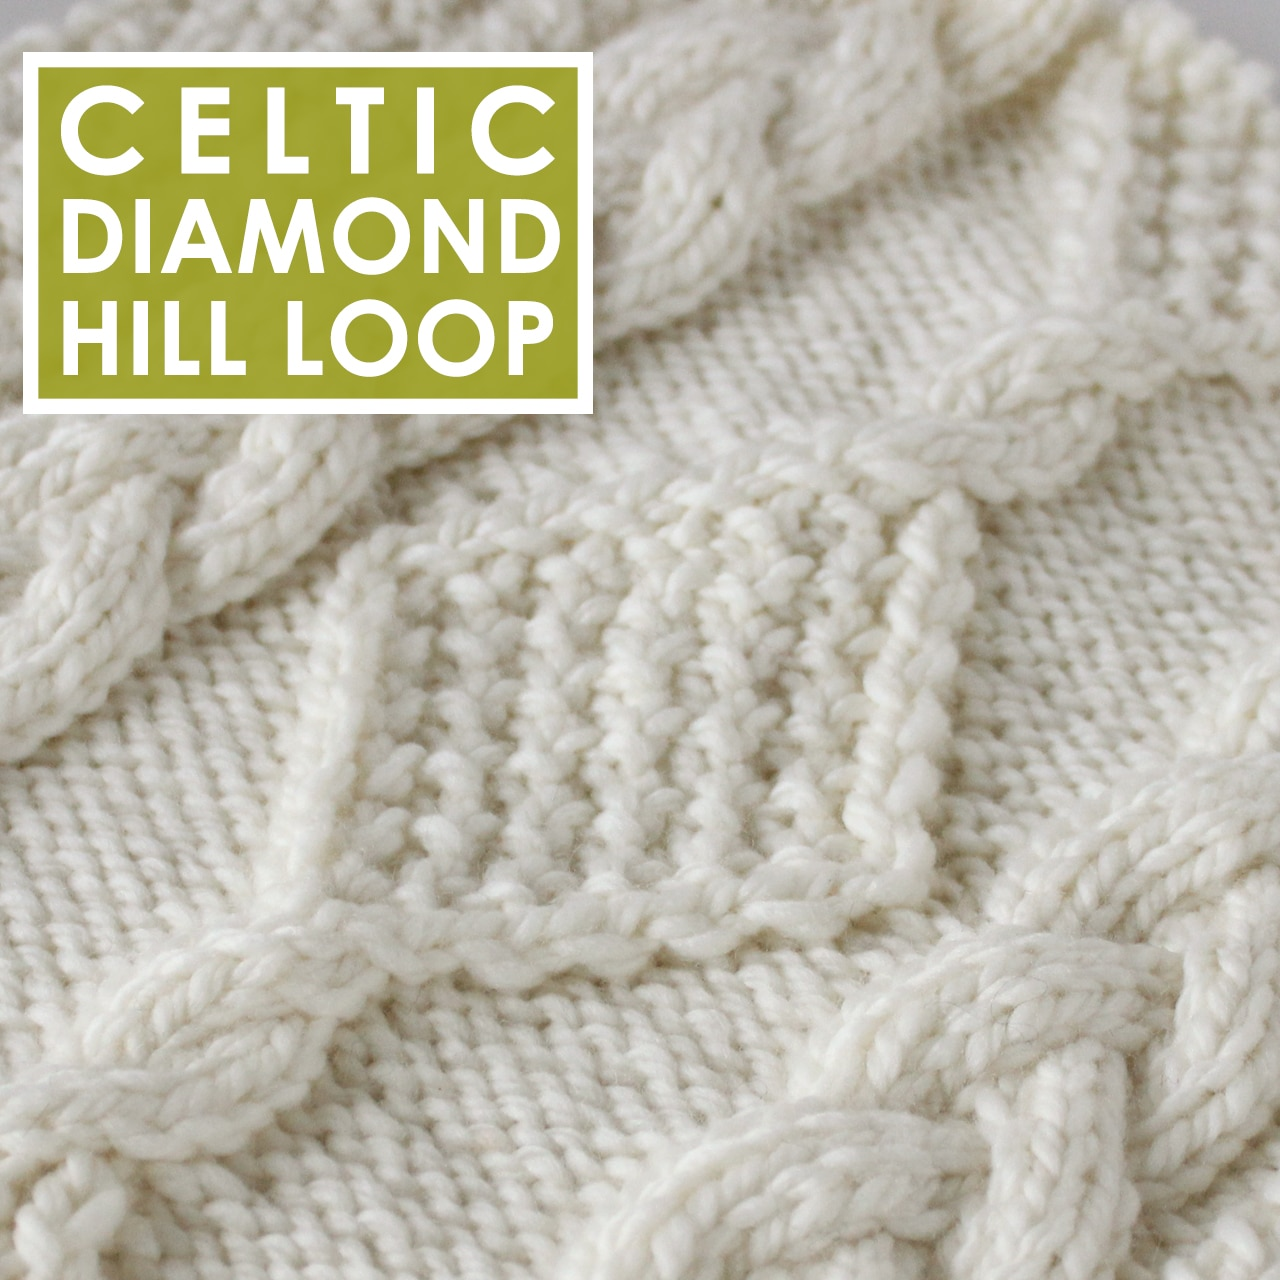 Diamond Hill Loop Celtic Cable Knitting Pattern Studio Knit